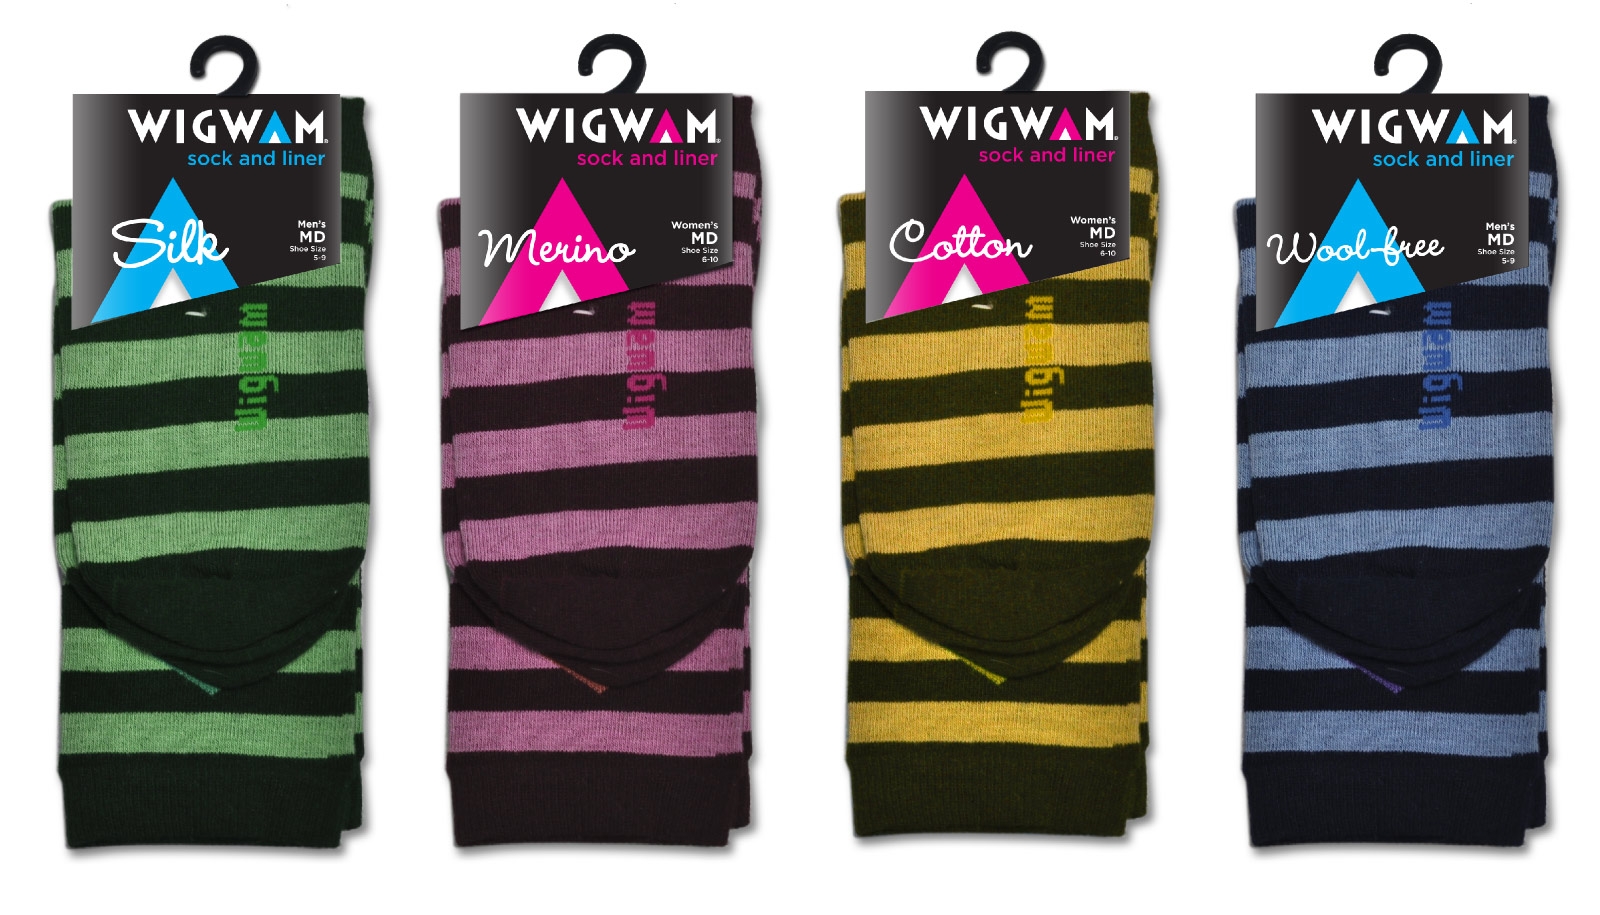 mslk-wigwam-casual-packaging